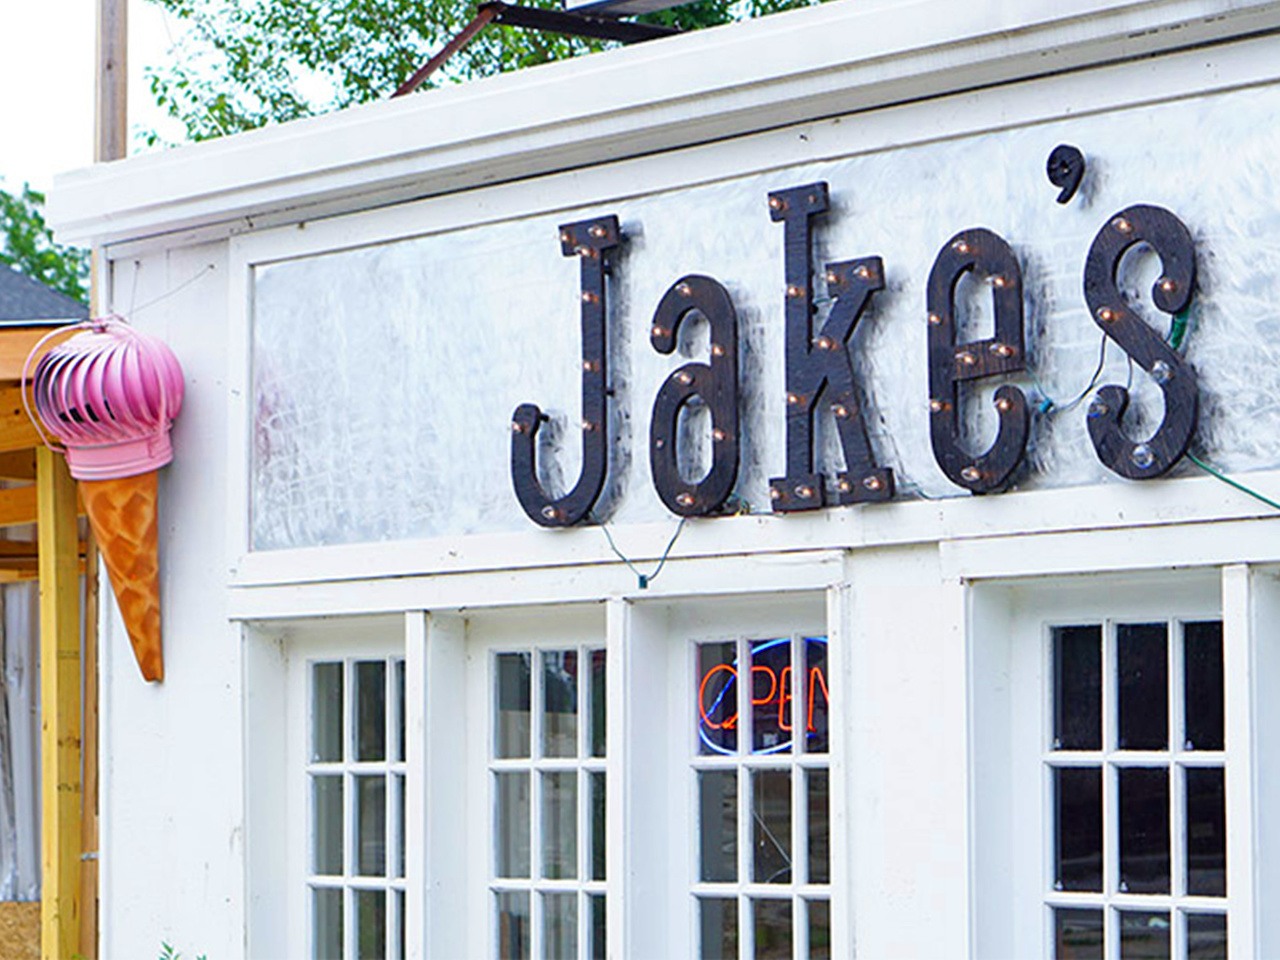 Jake's Ice Cream